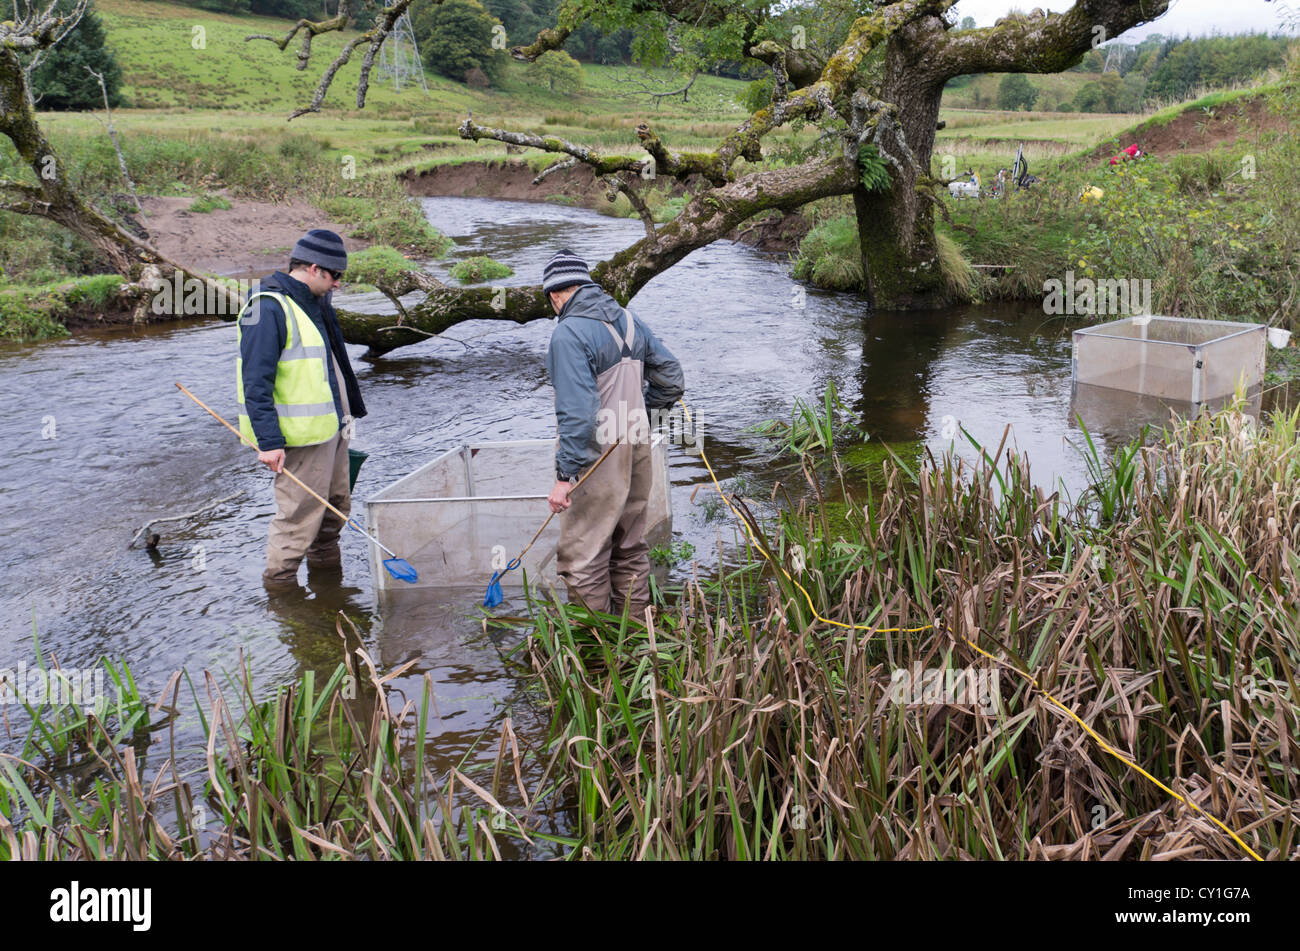 Two scientists sample 1m squared quadrats for Lampreys in the Blane Water river,  Scotland using electric fishing - Stock Image